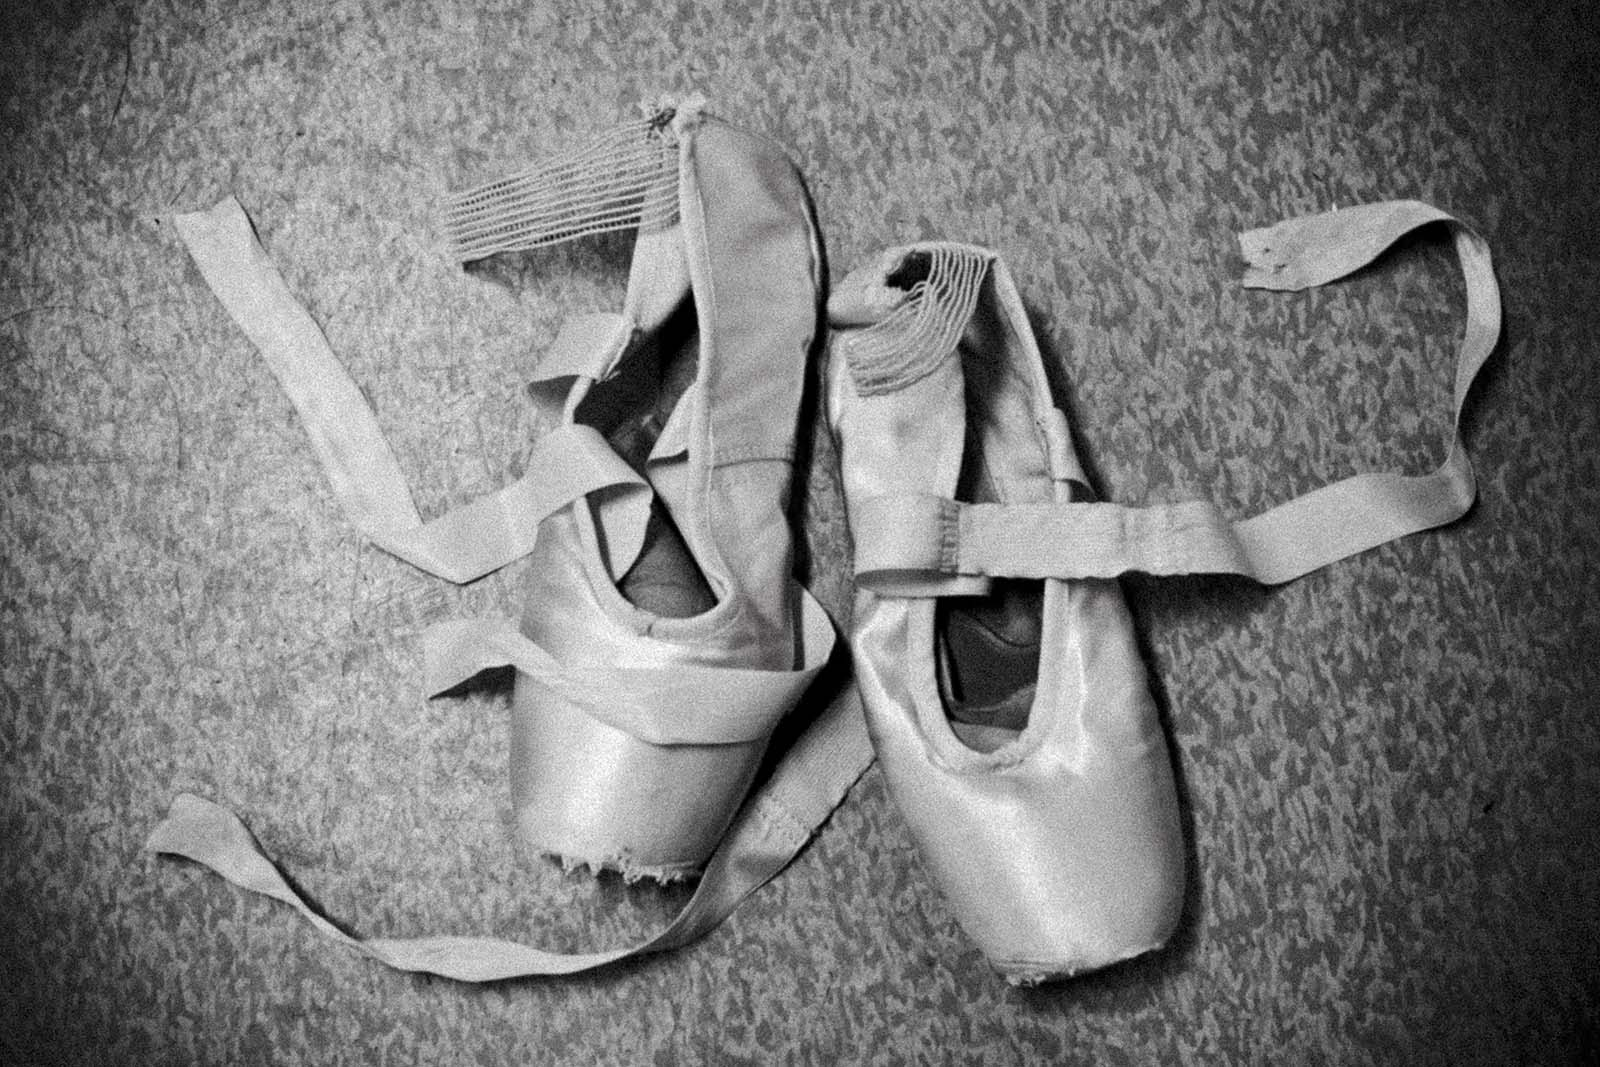 A pair of worn out ballerina shoes on the floor.